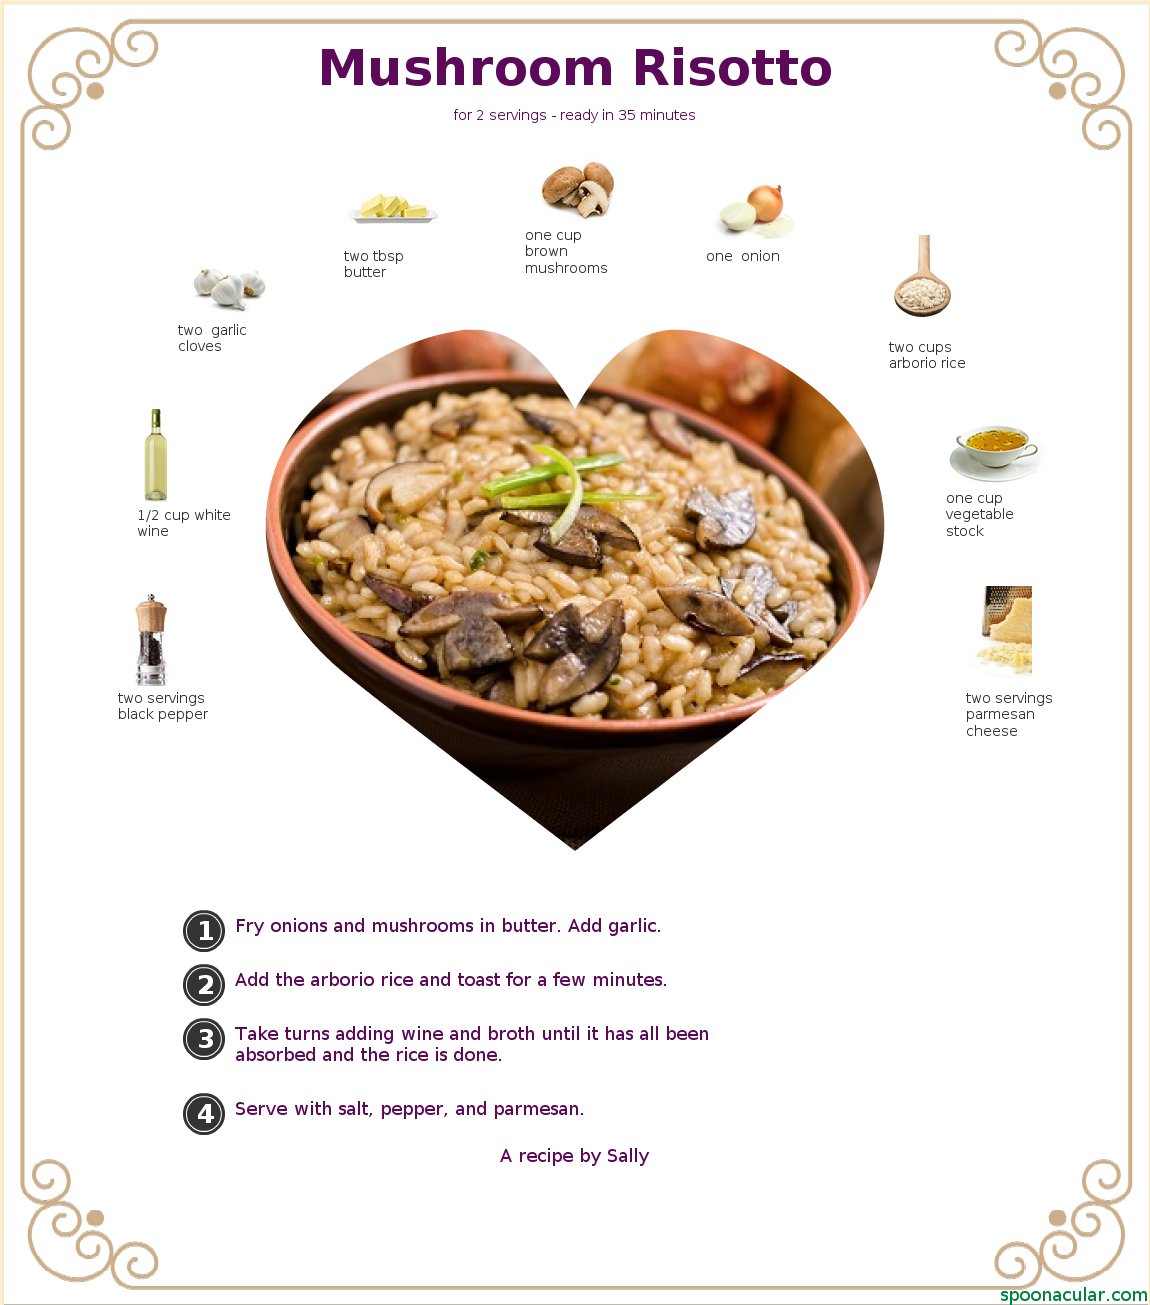 spoonacular automatically generated recipe card